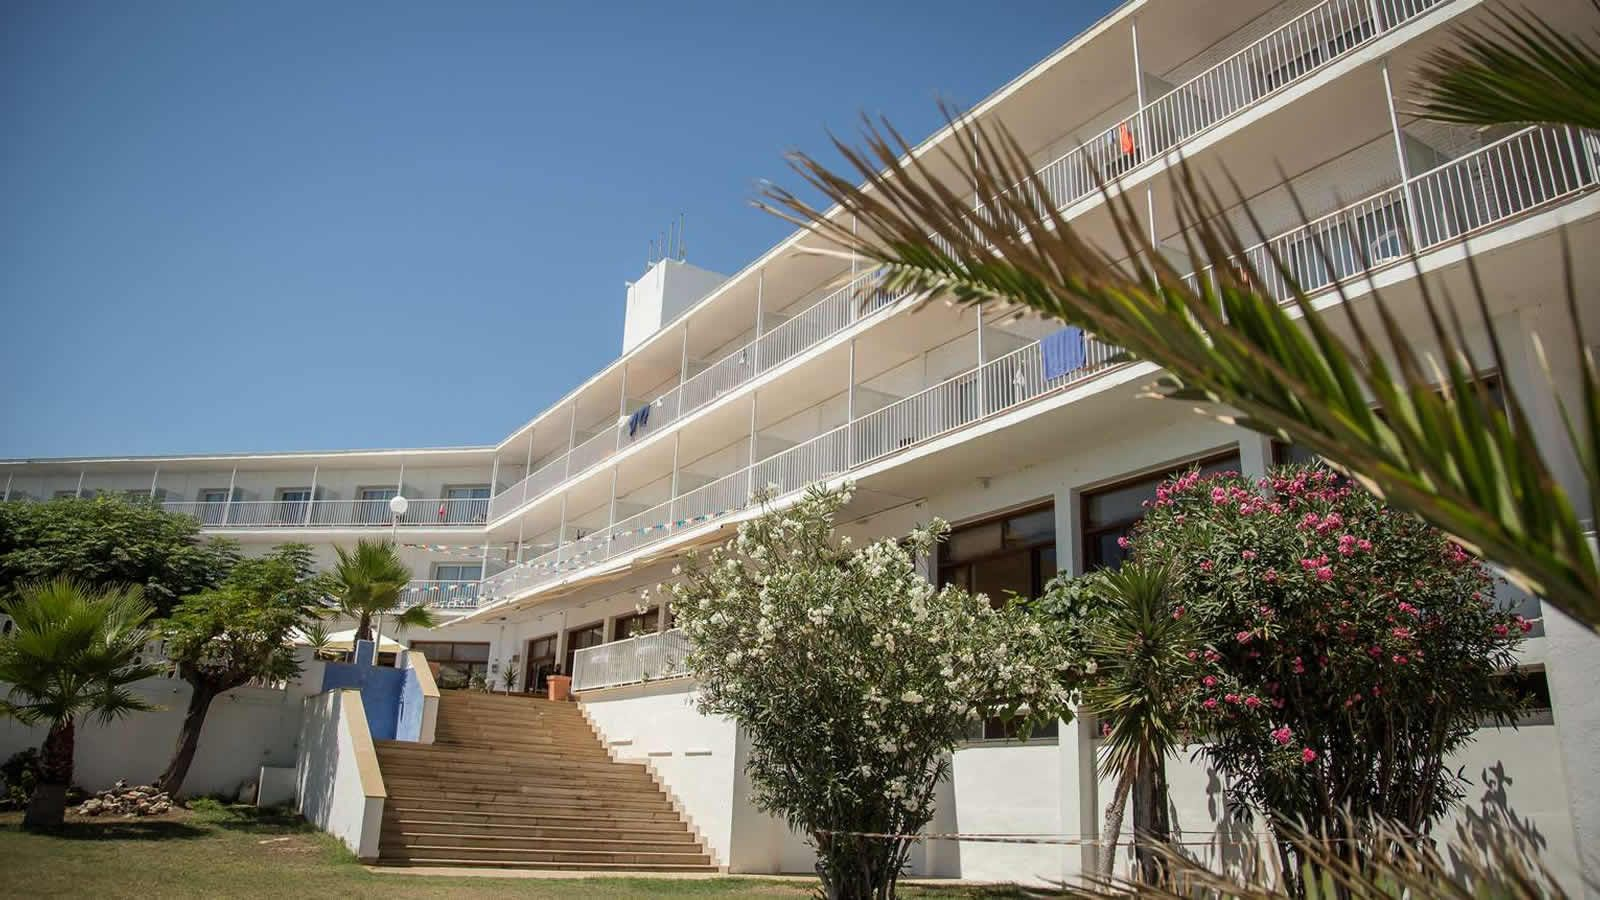 Welcome to the Carlos III Hotel in Alcanar - San Carlos de la Rapita – the Ebro Delta